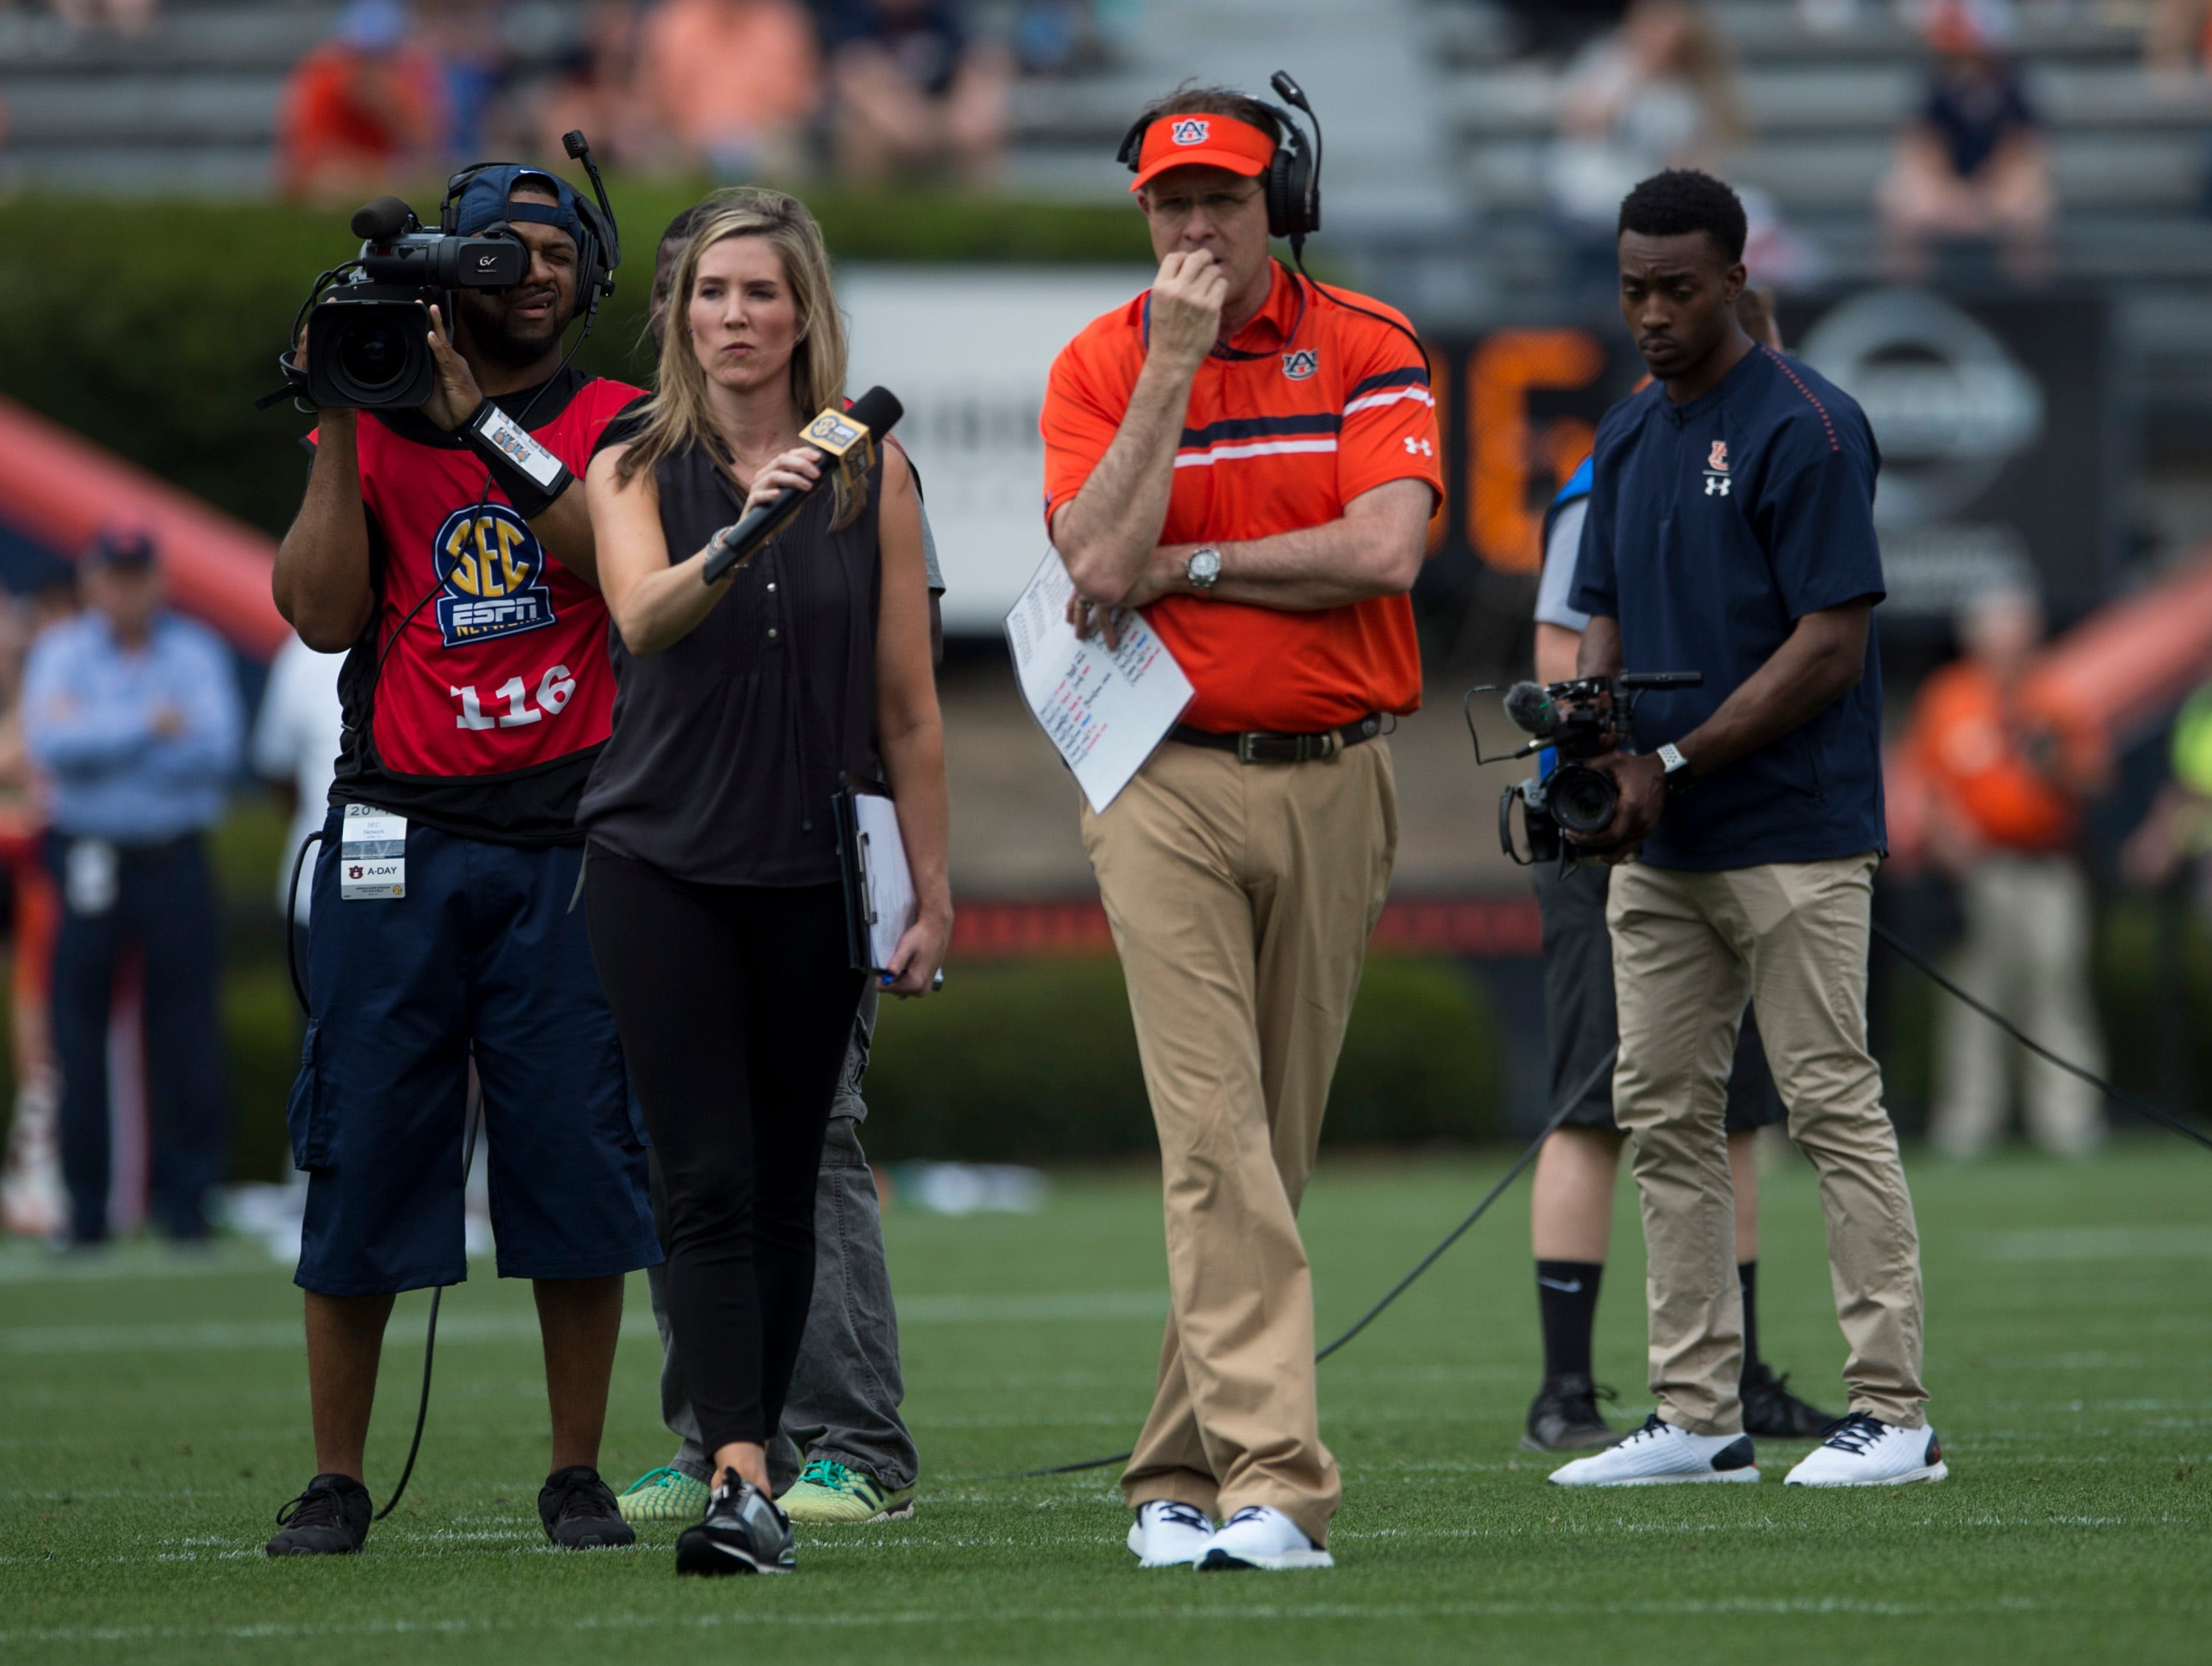 Auburn head coach Gus Malzahn watches on from the field during the A-Day spring practice gameat Jordan-Hare Stadium in Auburn, Ala., on Saturday, April 13, 2019.